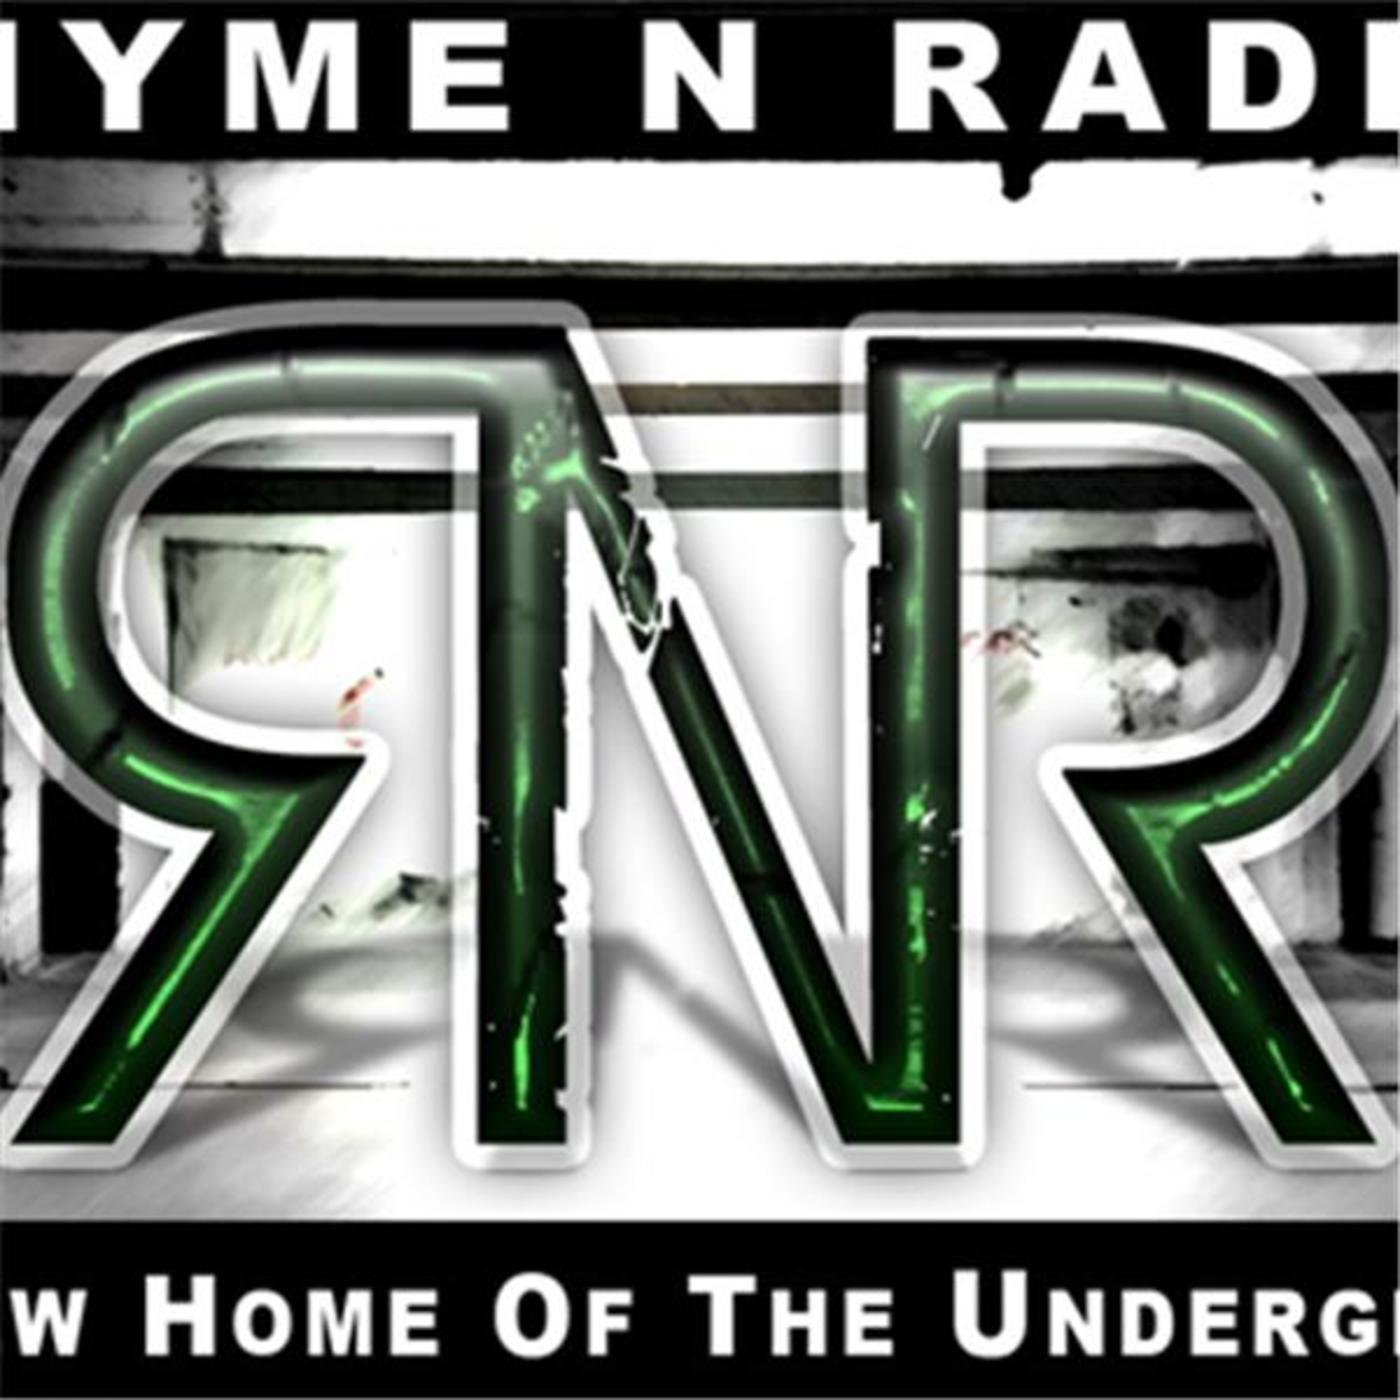 Rhyme N Radio (The S.U.N. Station)